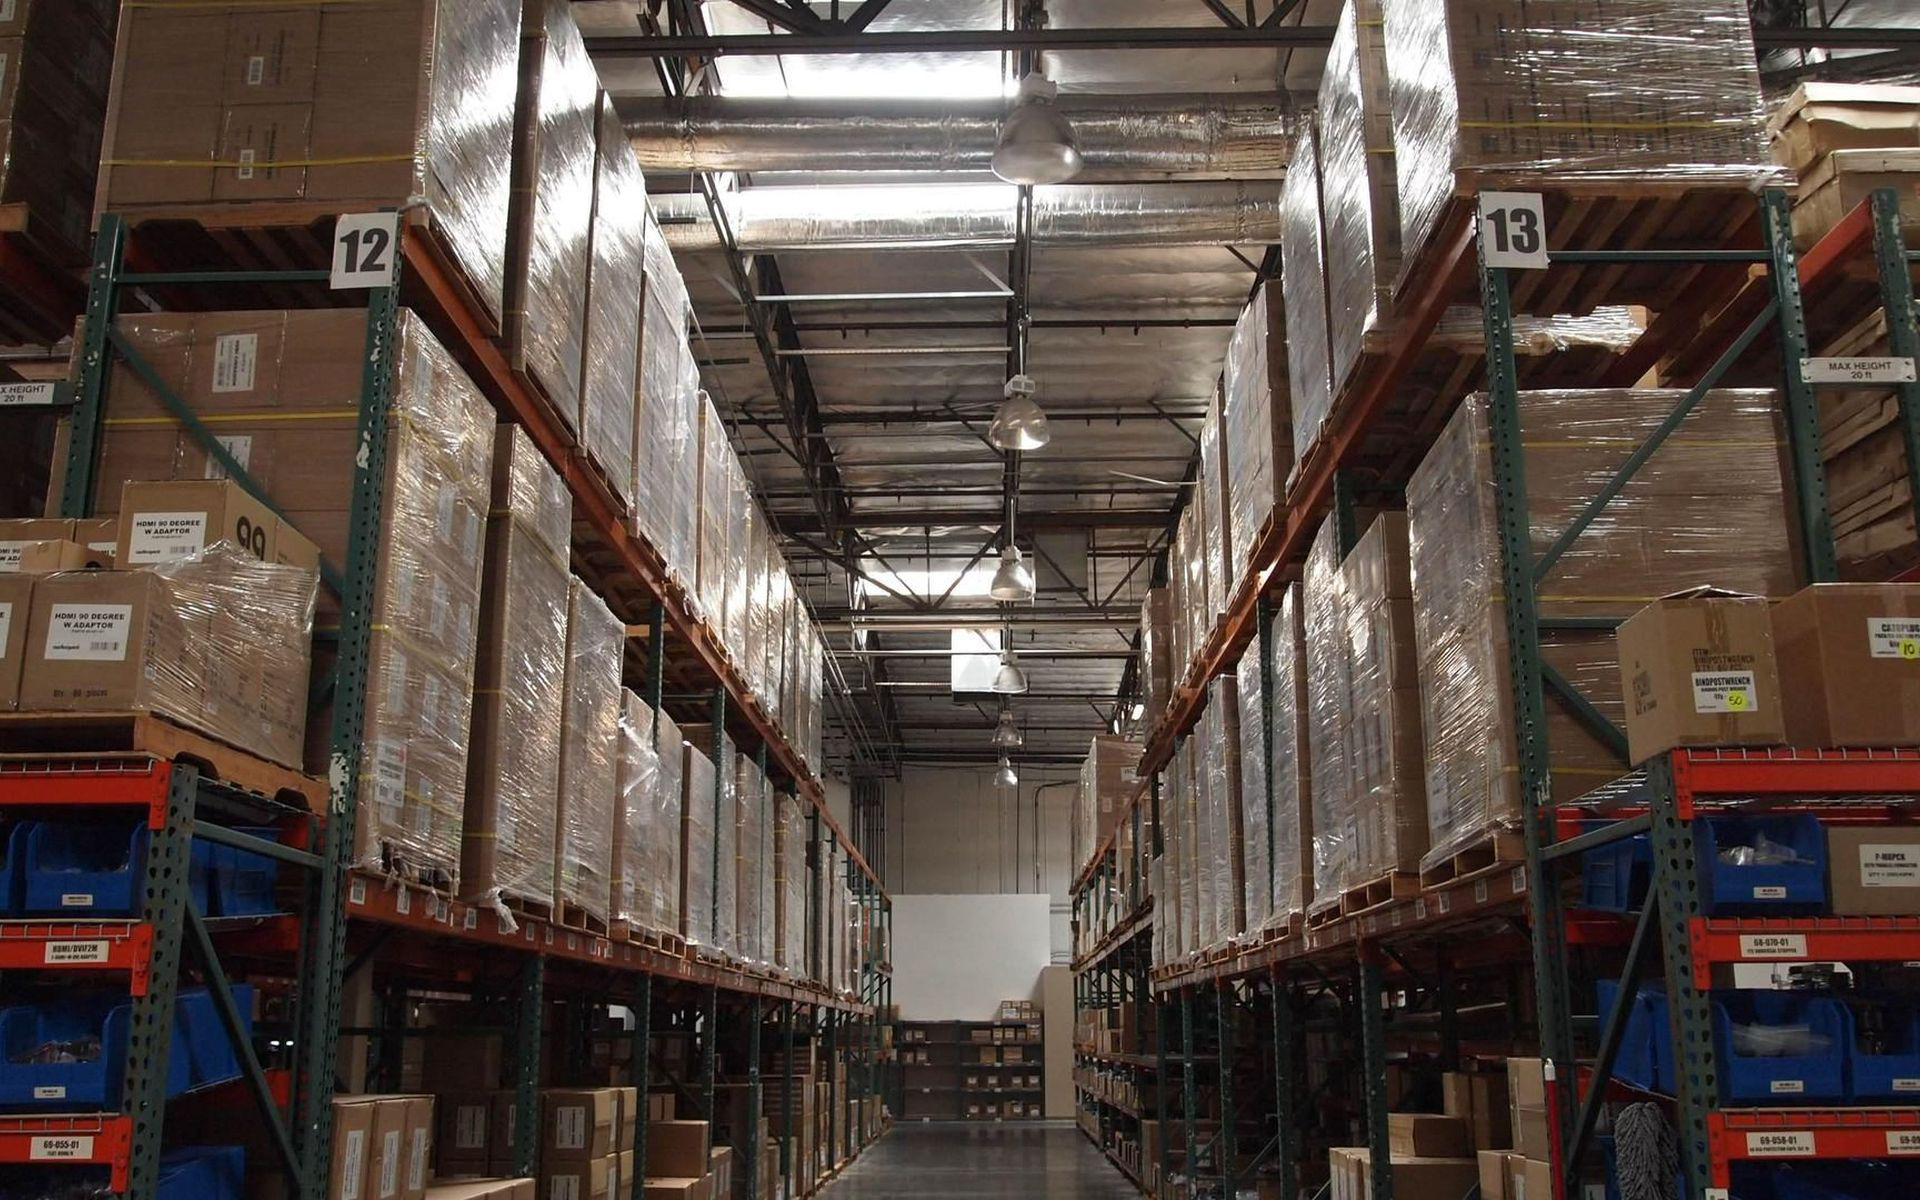 Warehousing in customs and local warehouse